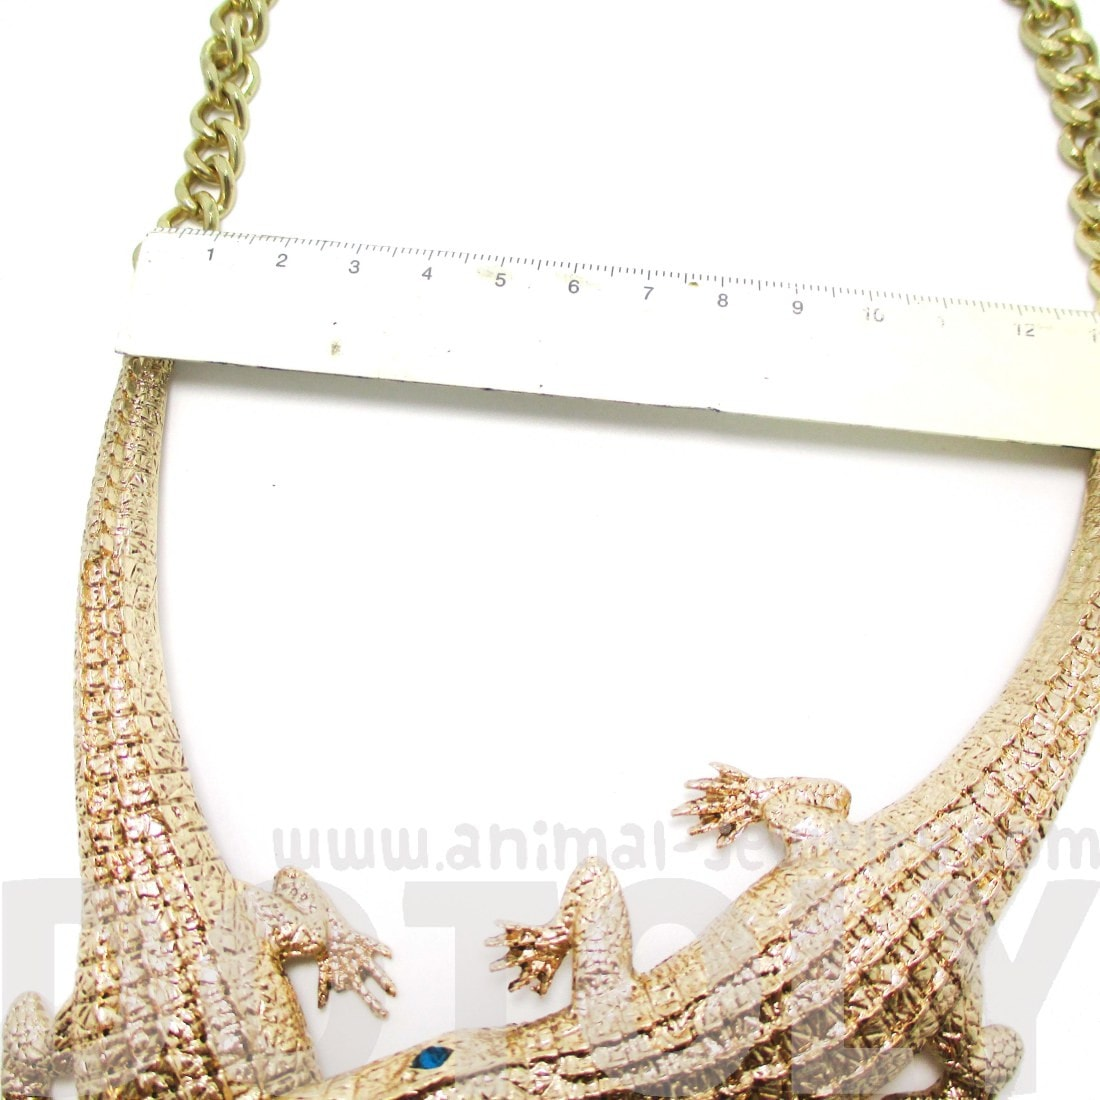 Large Alligator Crocodile Statement Necklace in Gold